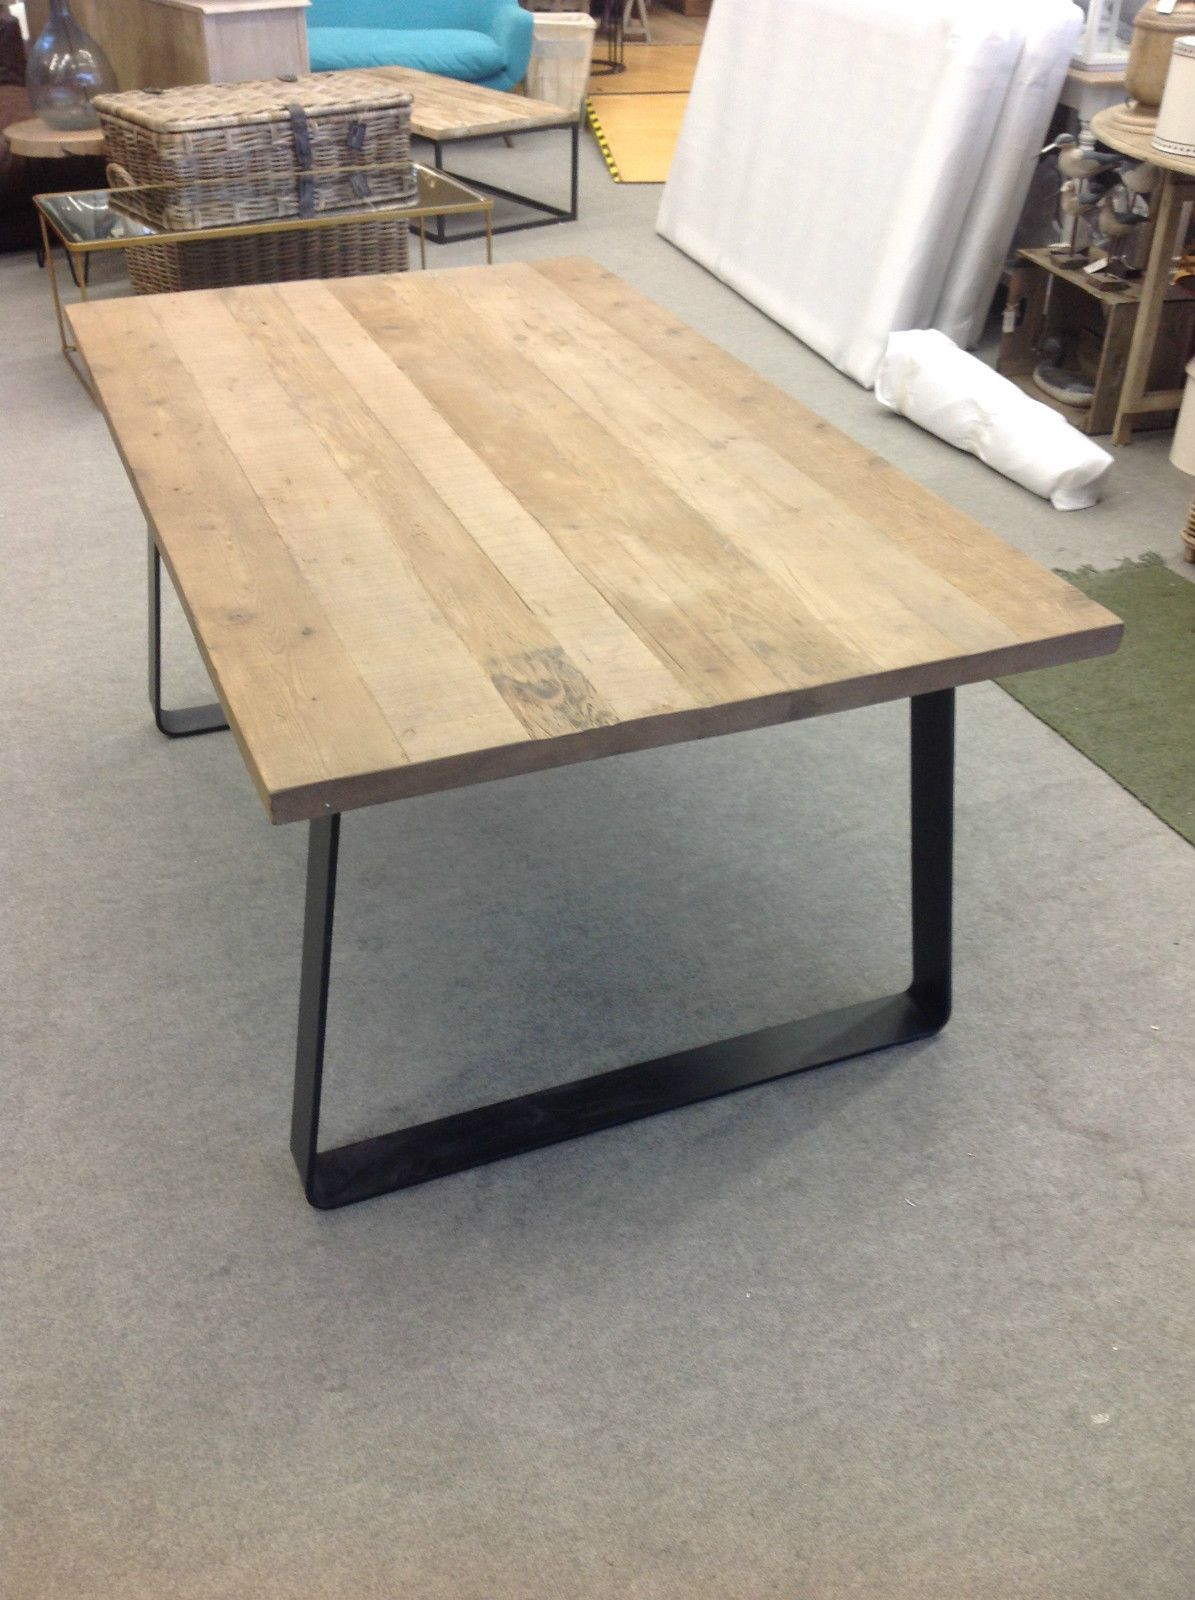 Designer Brand Industrial Style Reclaimed Timber Top Dining Table (medium) Part 97